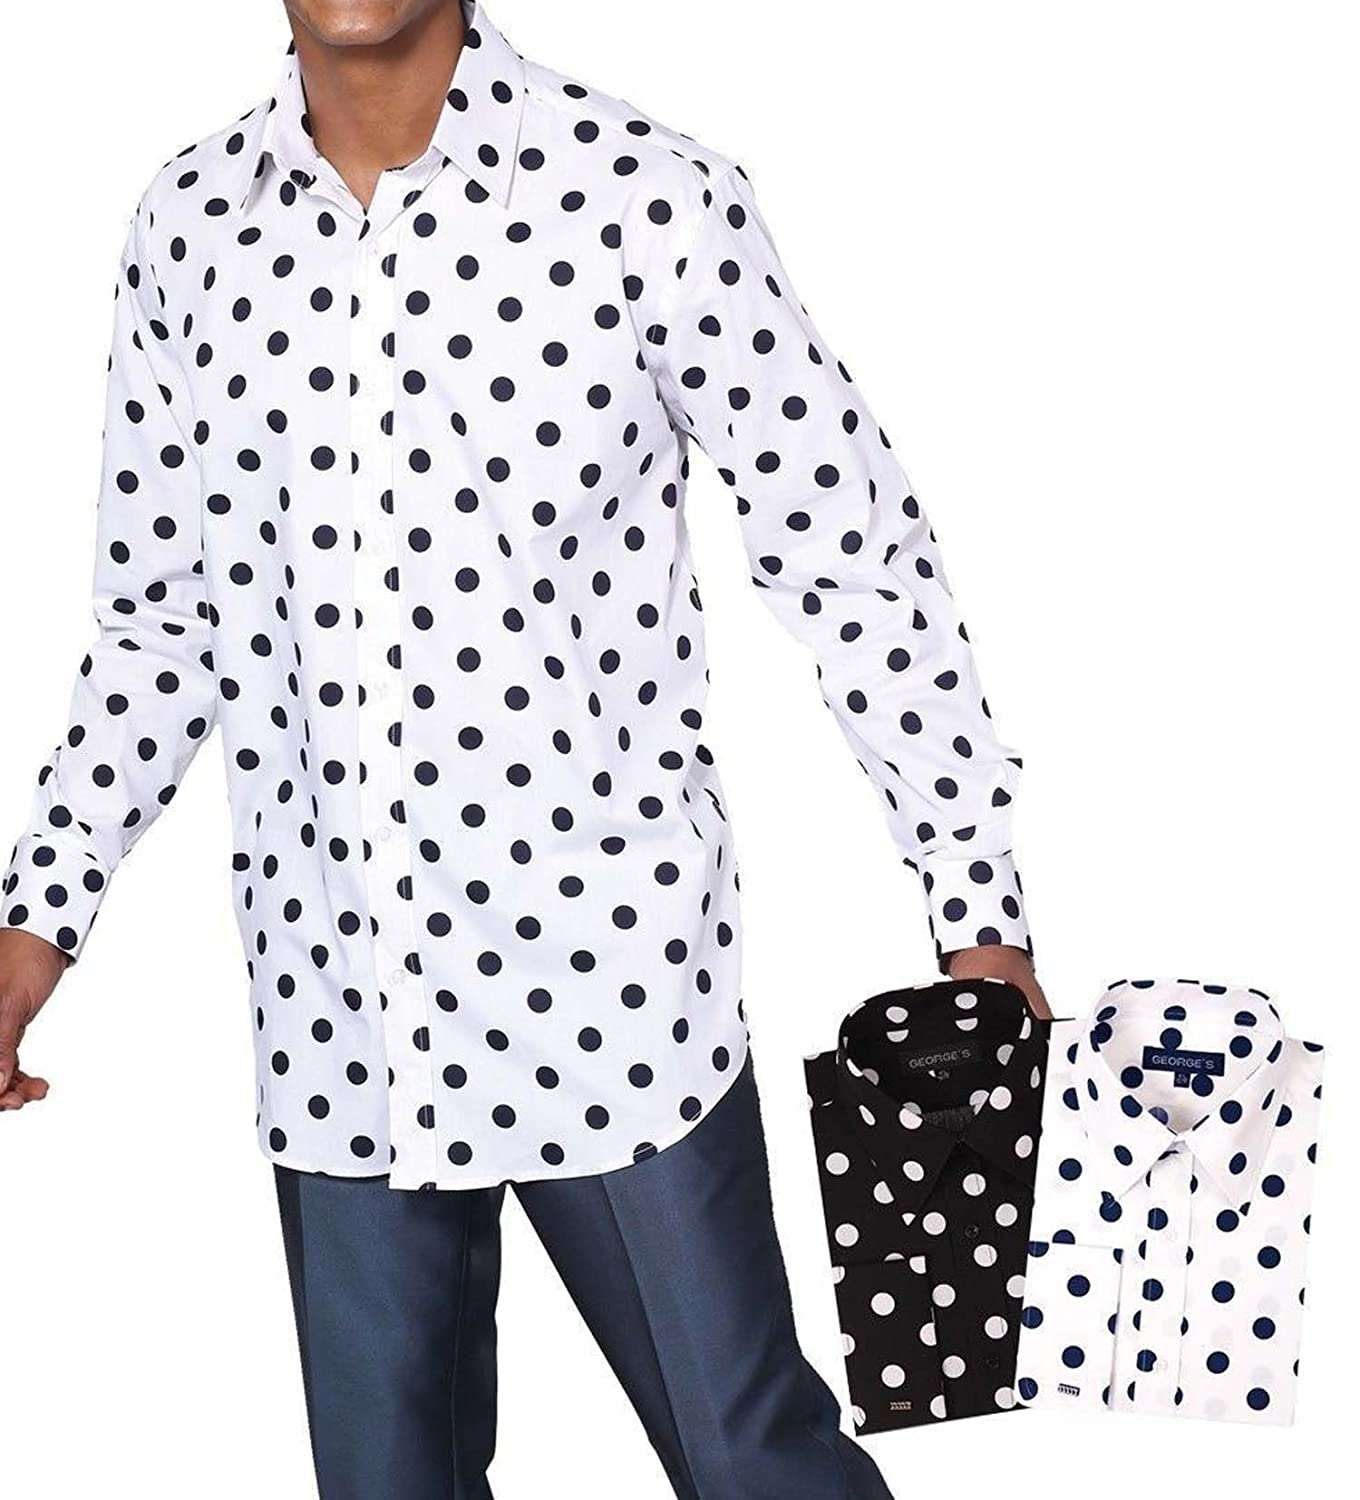 George's Big Polka Dot Pattern Shirt With French Cuff AH616-BGD-20 ...